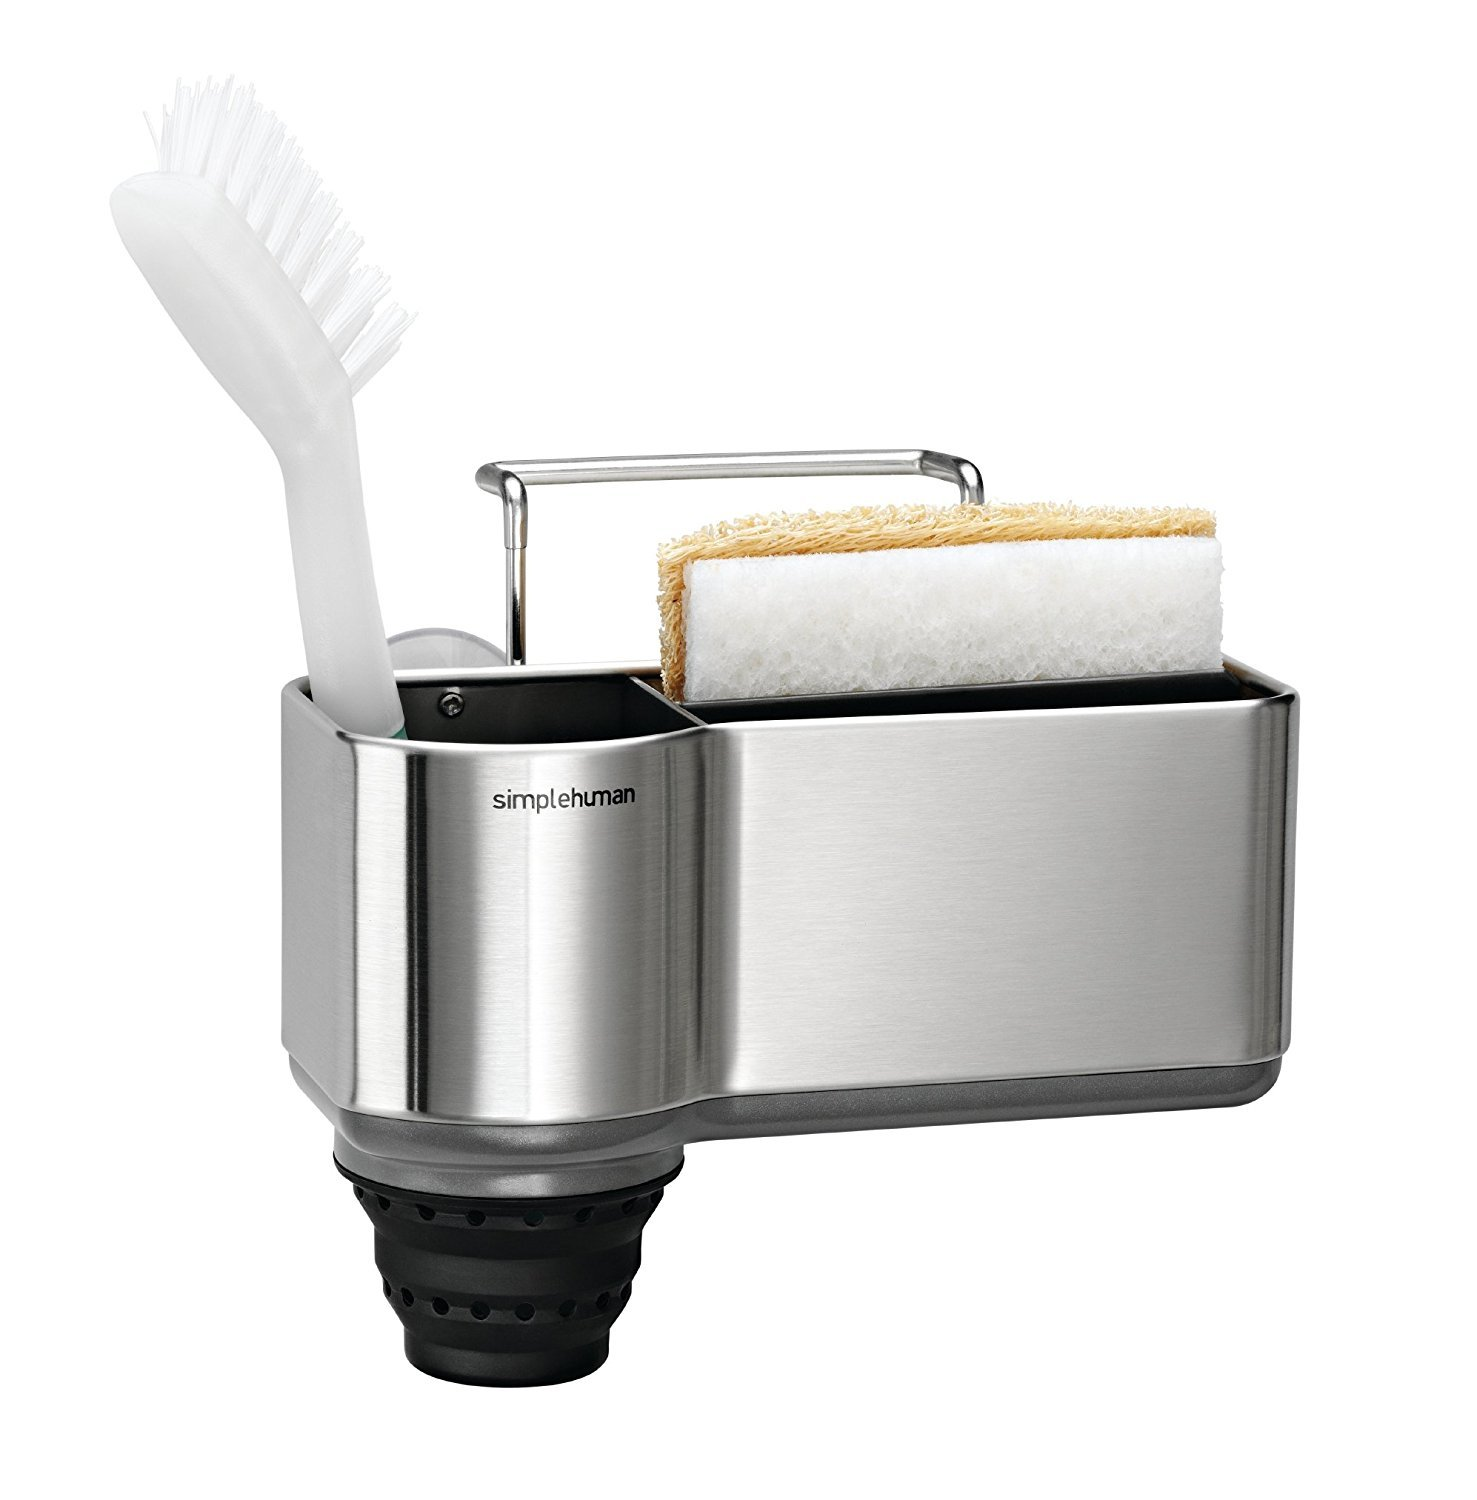 simplehuman Sink Caddy, Brushed Stainless Steel